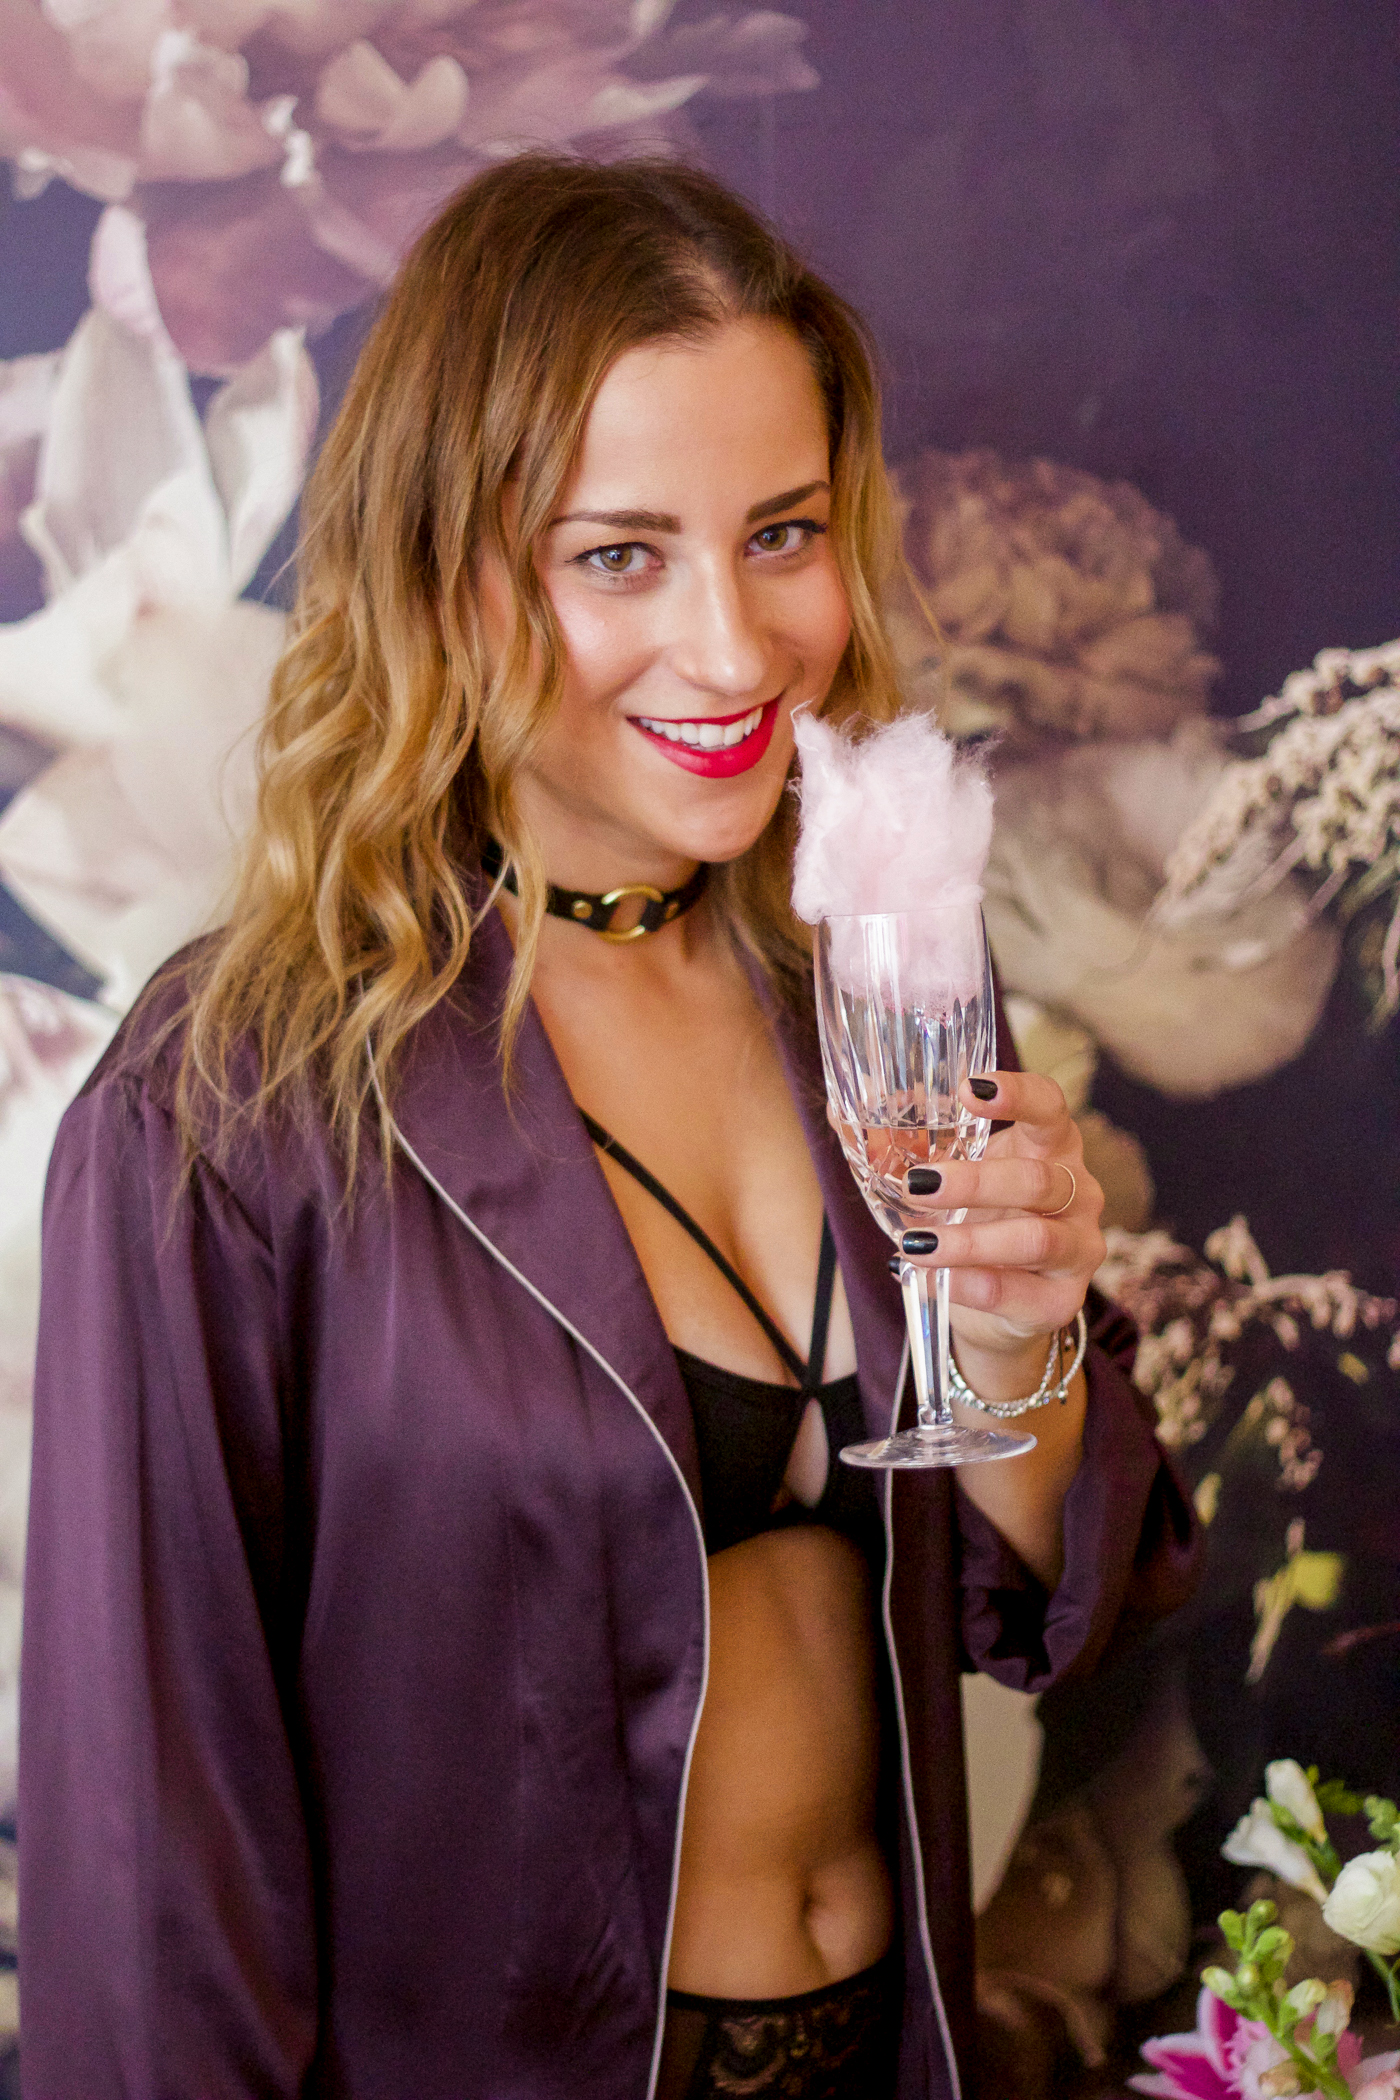 Toronto blogger shoot at Stole My Heart, with Fancy Puffs and Champagne for props